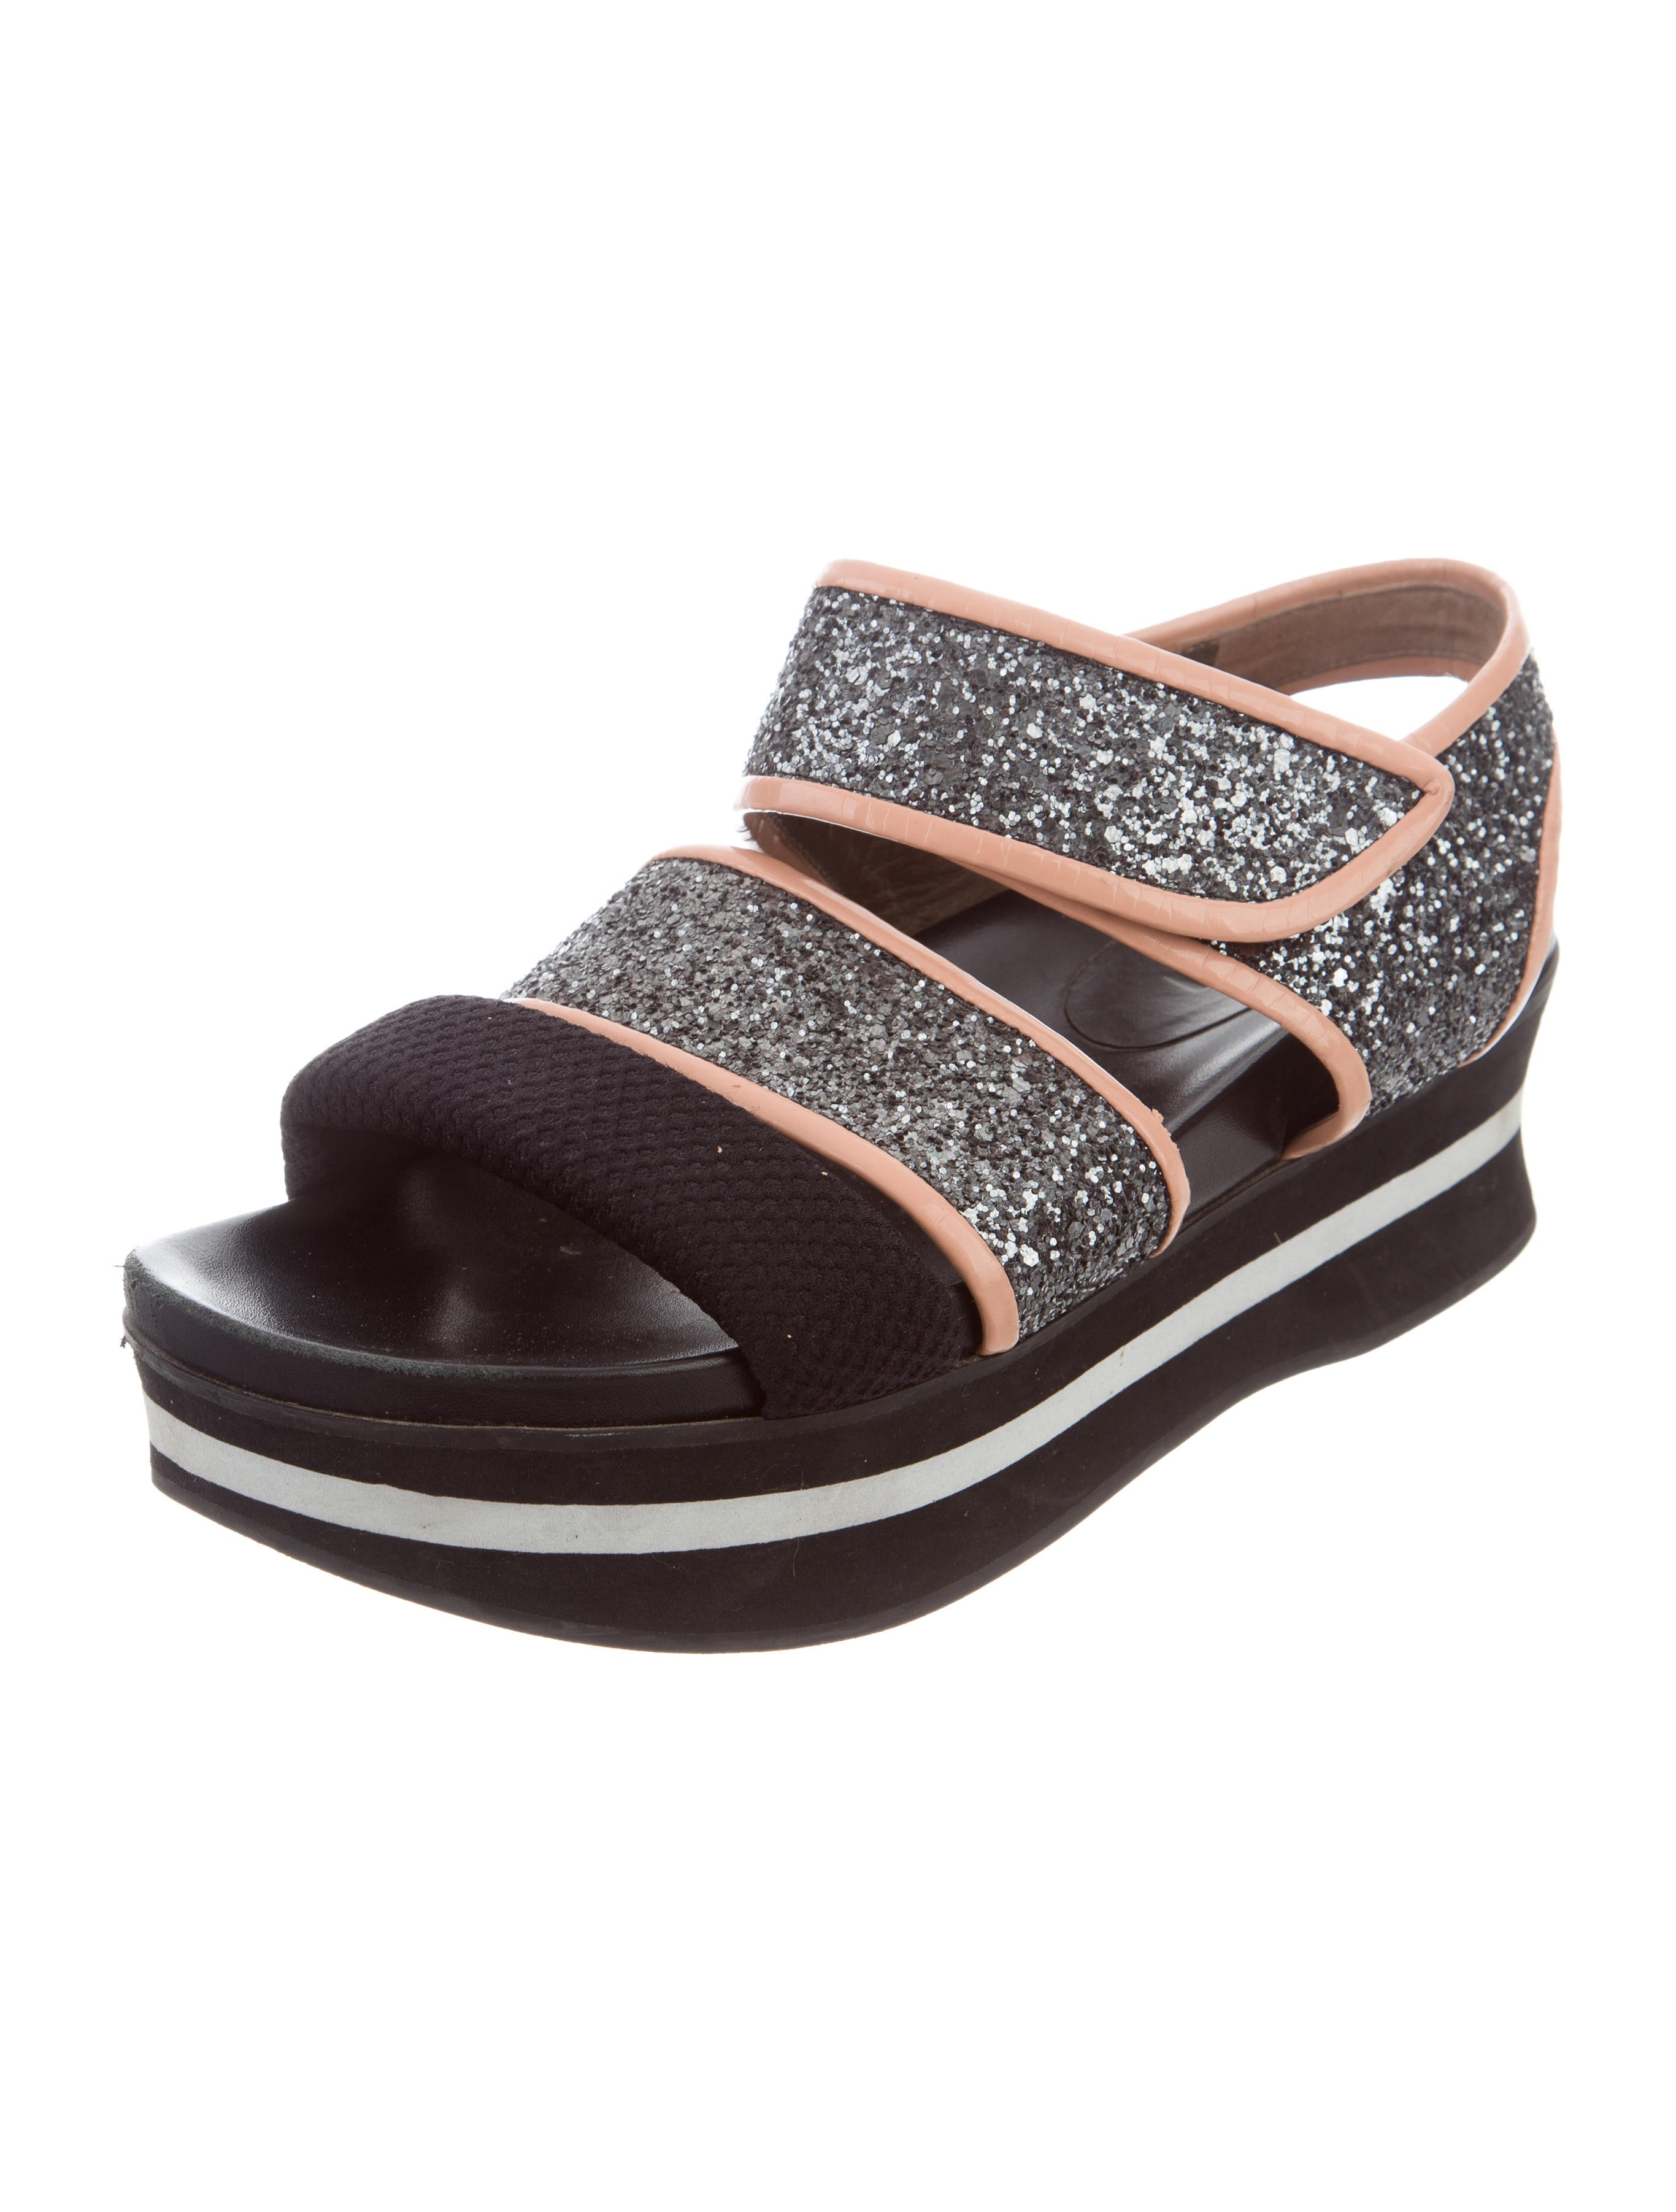 buy cheap footaction cheap sale latest collections Marni Glitter Patent Leather-Trimmed Sandals clearance 2014 newest visit new styles cheap online PbVUyOH